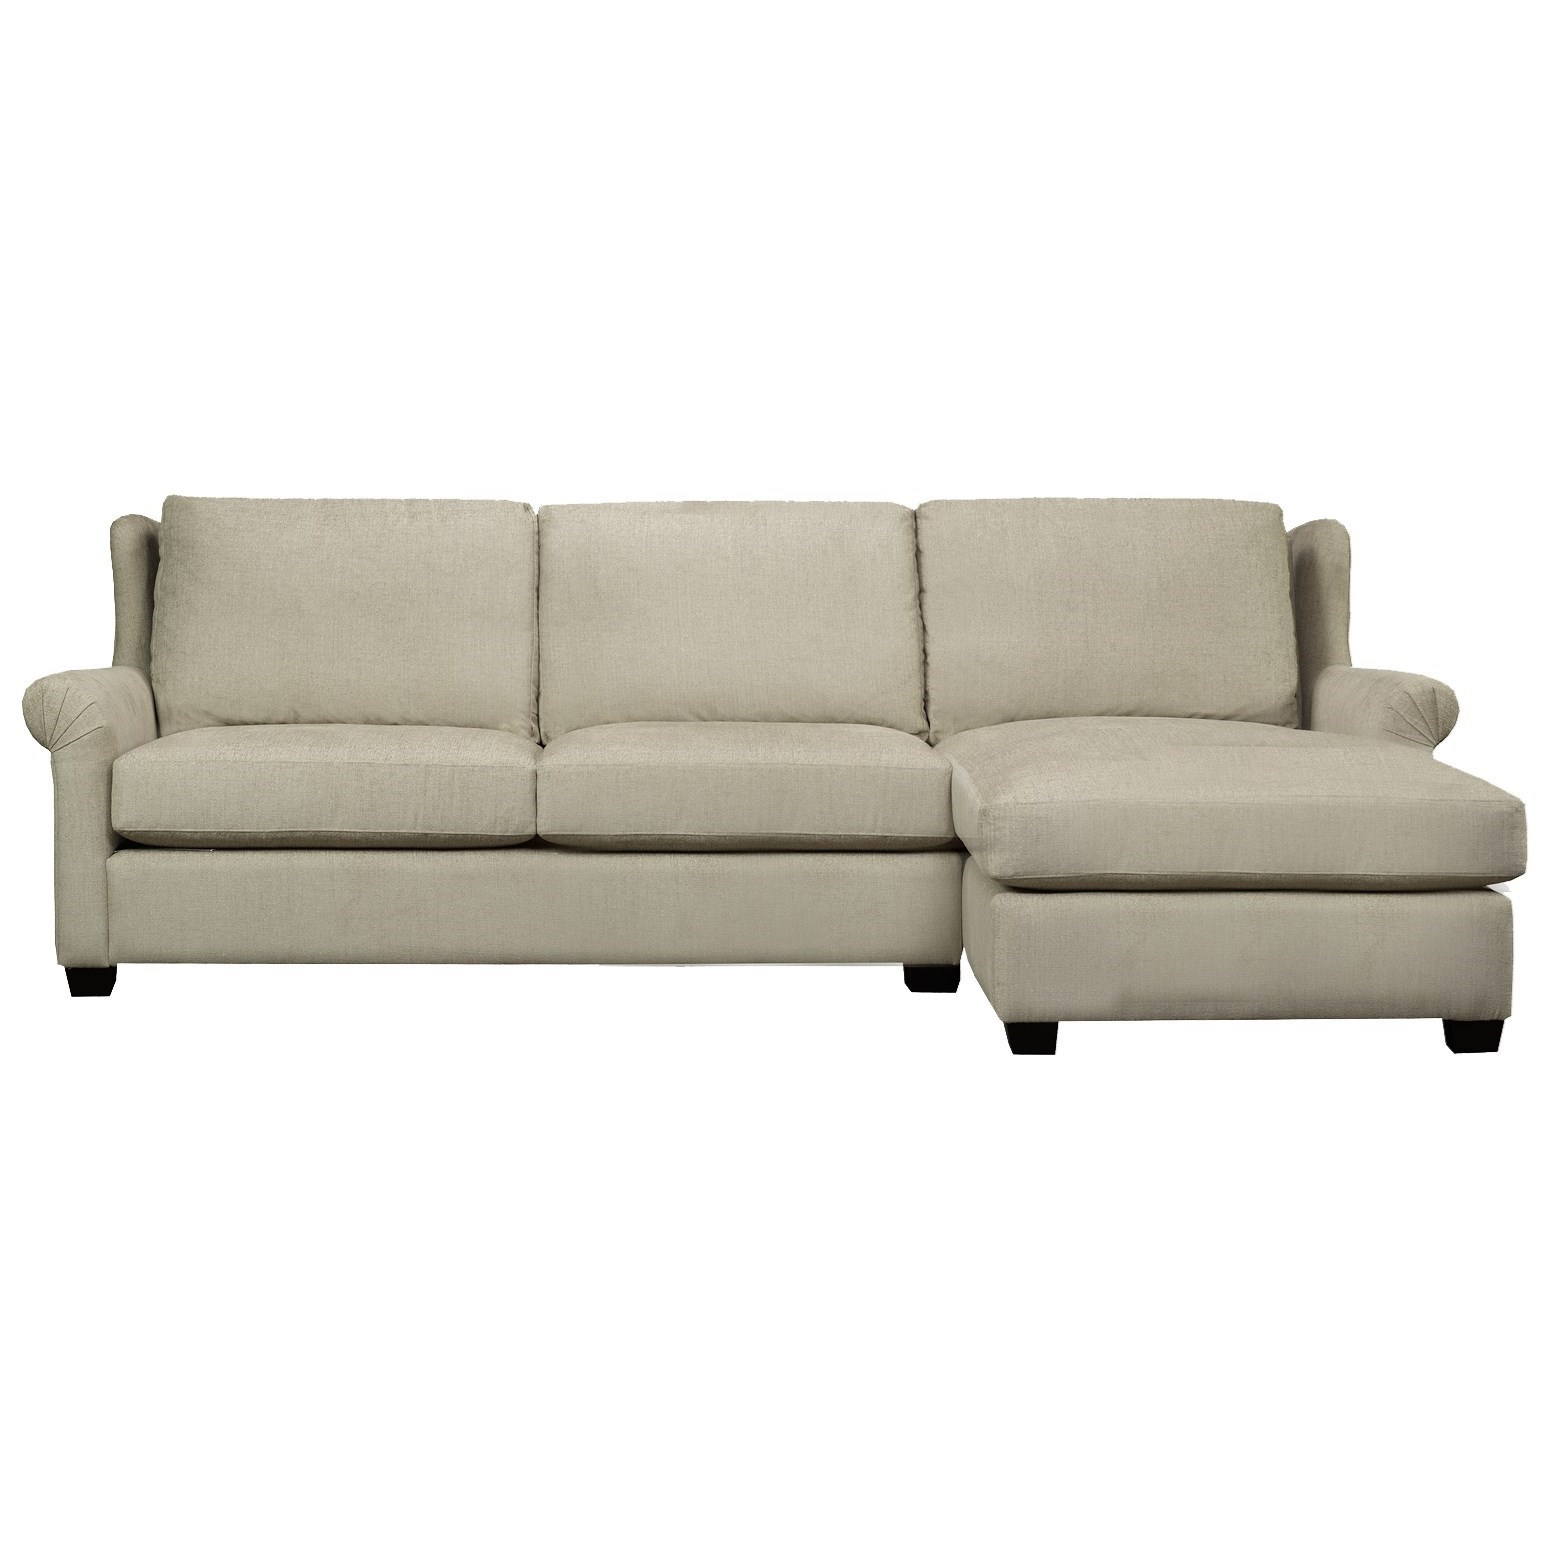 Edward Sofa with Chaise by Brentwood Classics at Stoney Creek Furniture